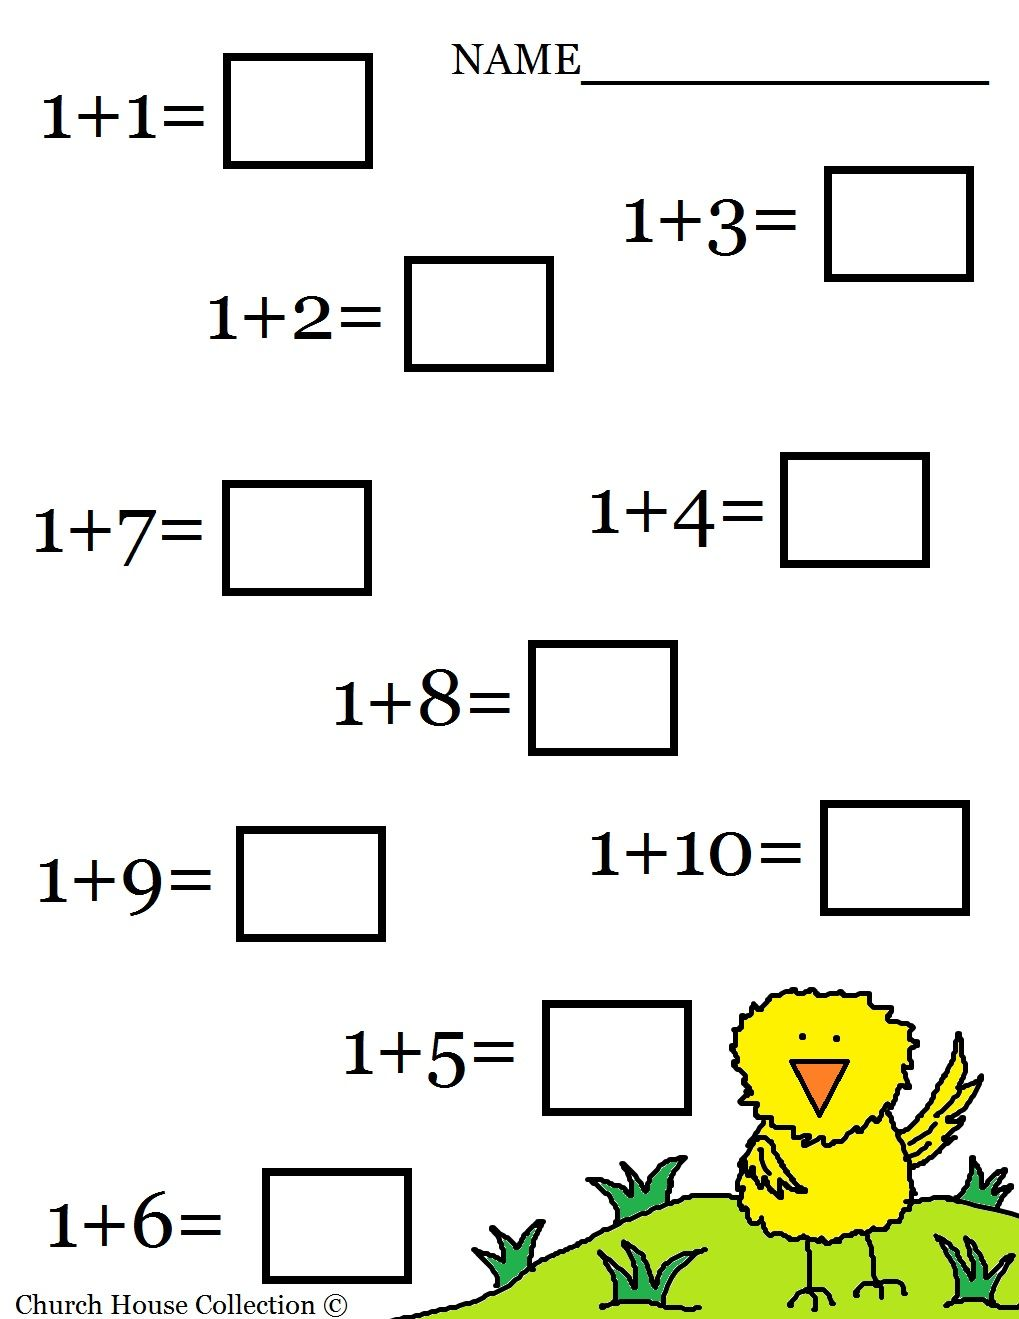 Aldiablosus  Marvelous  Images About Worksheets  Math On Pinterest  Math Sheets  With Remarkable  Images About Worksheets  Math On Pinterest  Math Sheets Math Worksheets For Kindergarten And Simple Addition With Easy On The Eye Public Speaking Worksheet Also Tracing The Alphabet Worksheets In Addition Decimal Multiplication And Division Worksheets And Conjunctions Worksheet Rd Grade As Well As Geometric Constructions Worksheets Additionally Plural Nouns Worksheet Rd Grade From Pinterestcom With Aldiablosus  Remarkable  Images About Worksheets  Math On Pinterest  Math Sheets  With Easy On The Eye  Images About Worksheets  Math On Pinterest  Math Sheets Math Worksheets For Kindergarten And Simple Addition And Marvelous Public Speaking Worksheet Also Tracing The Alphabet Worksheets In Addition Decimal Multiplication And Division Worksheets From Pinterestcom